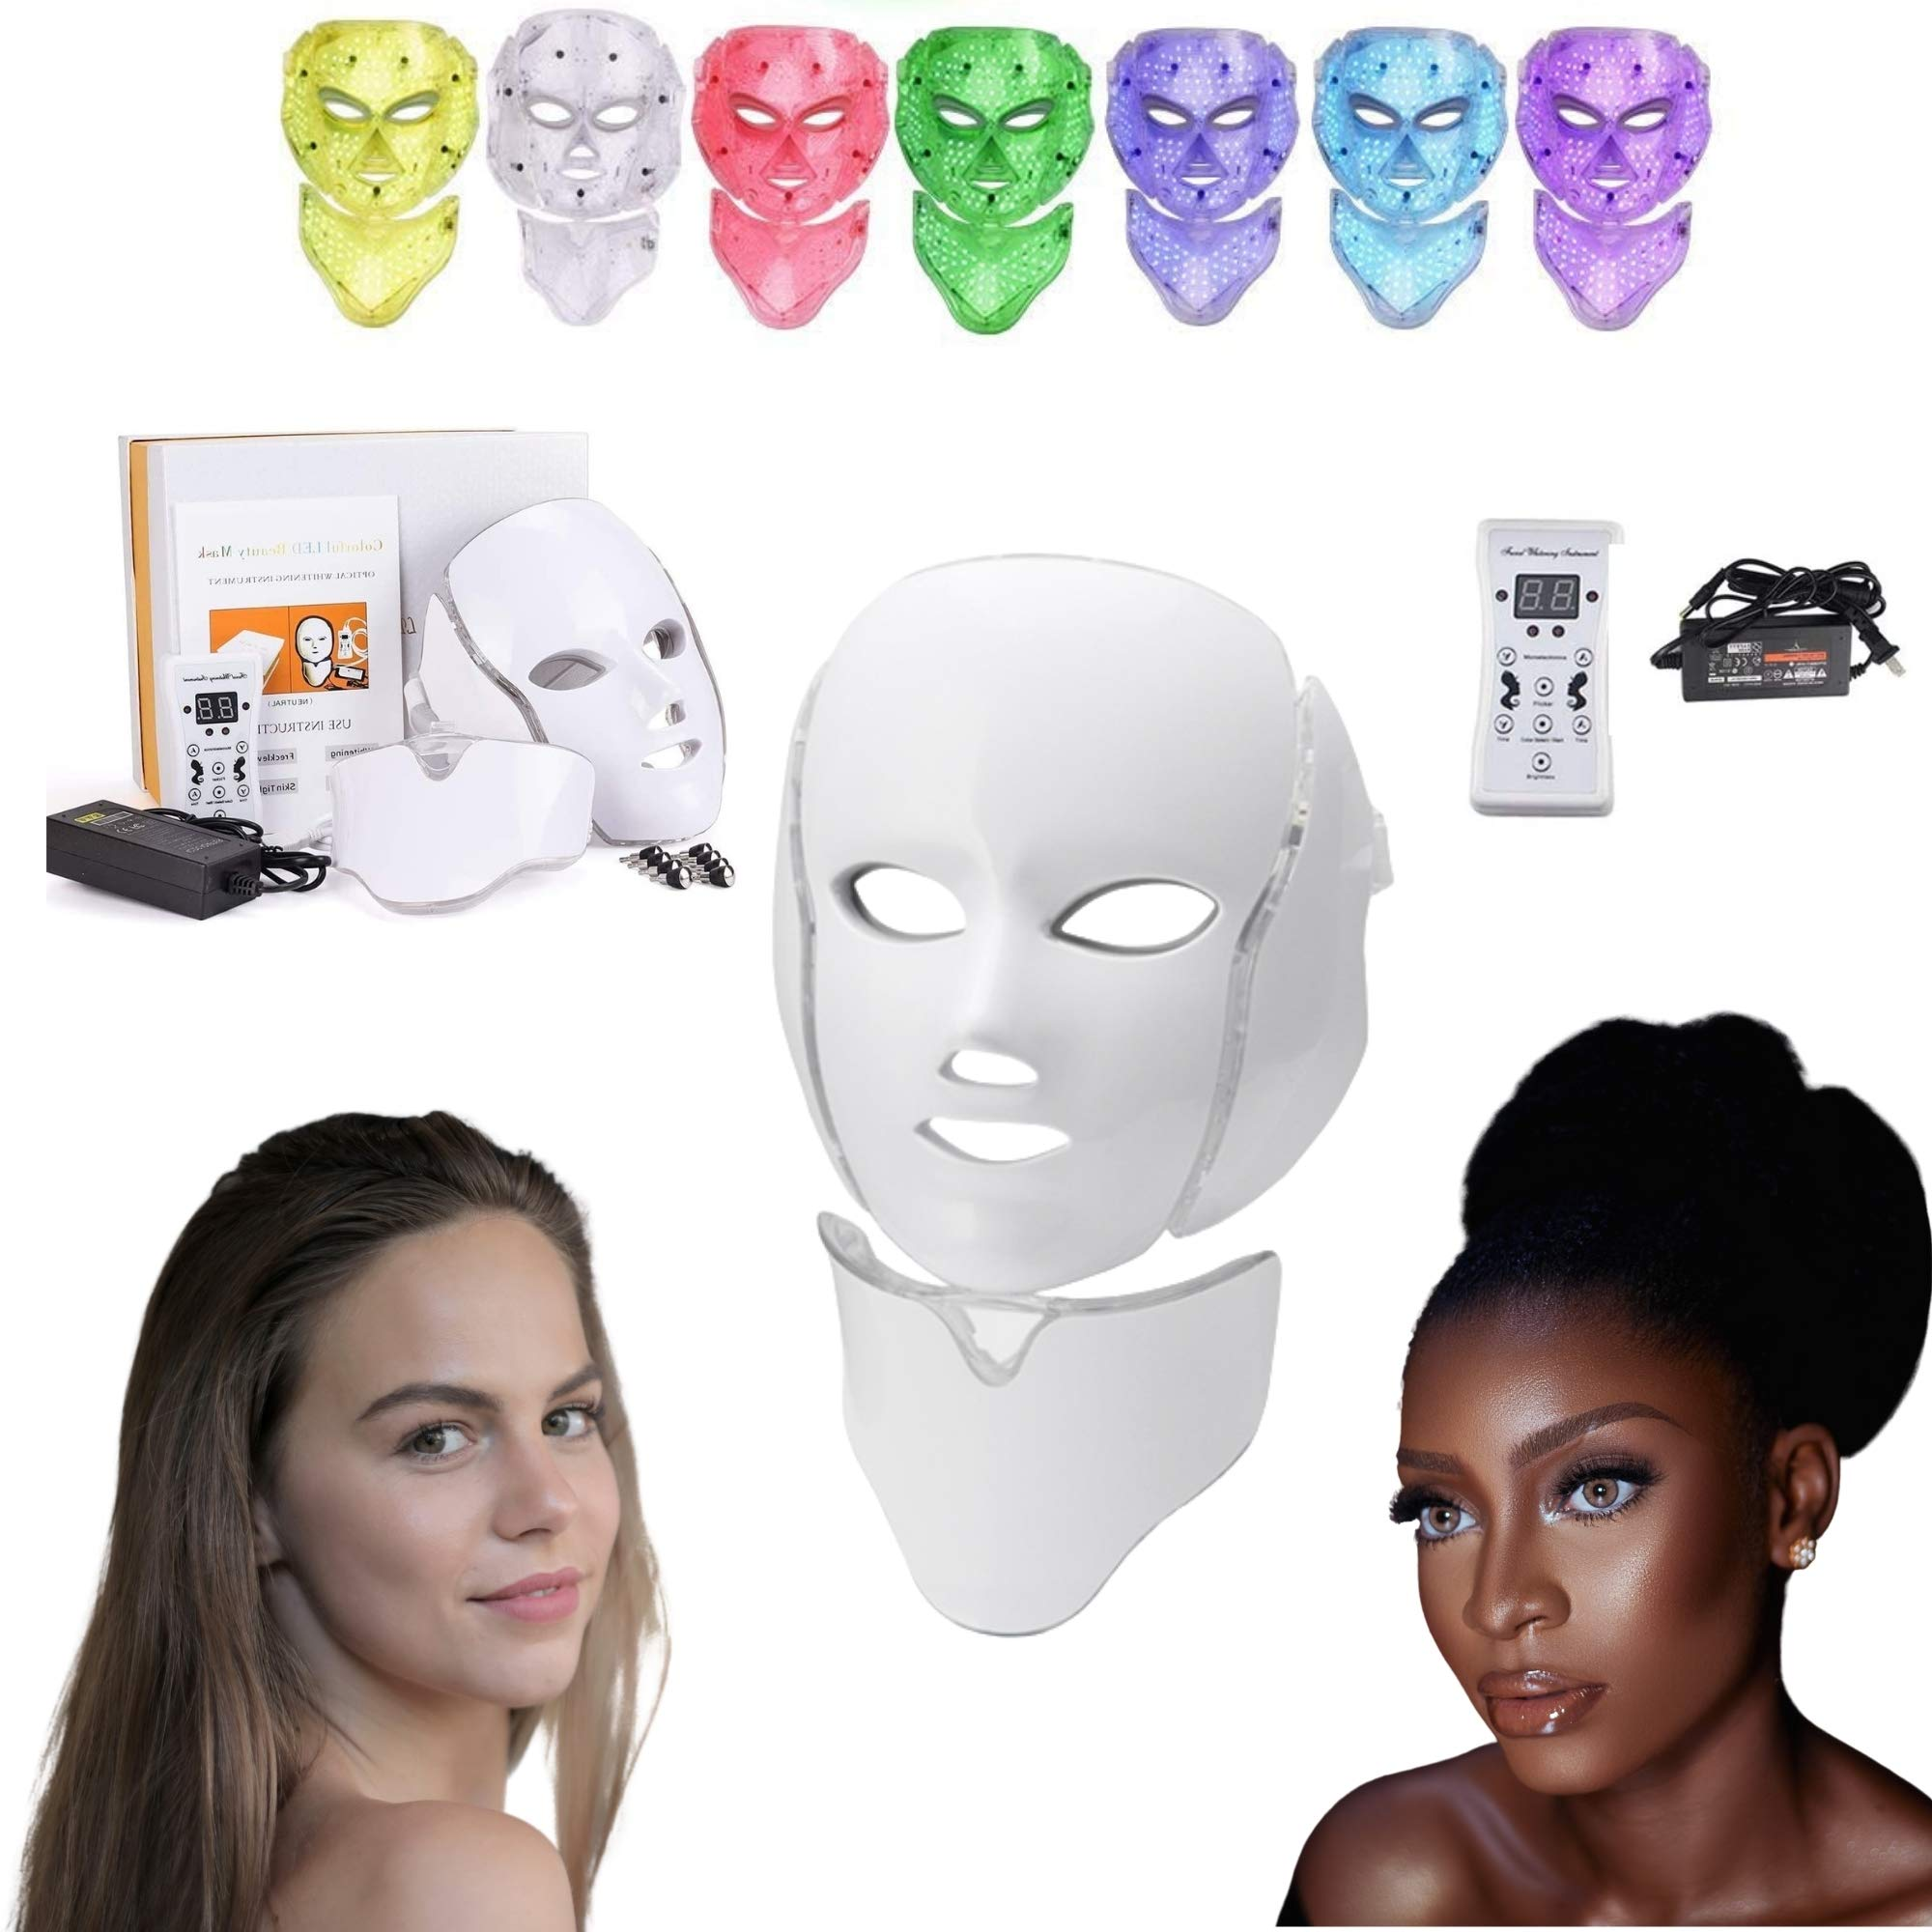 Photon LED Mask Skin Therapy for Acne, Anti Aging, Wrinkles & Collagen Boosting